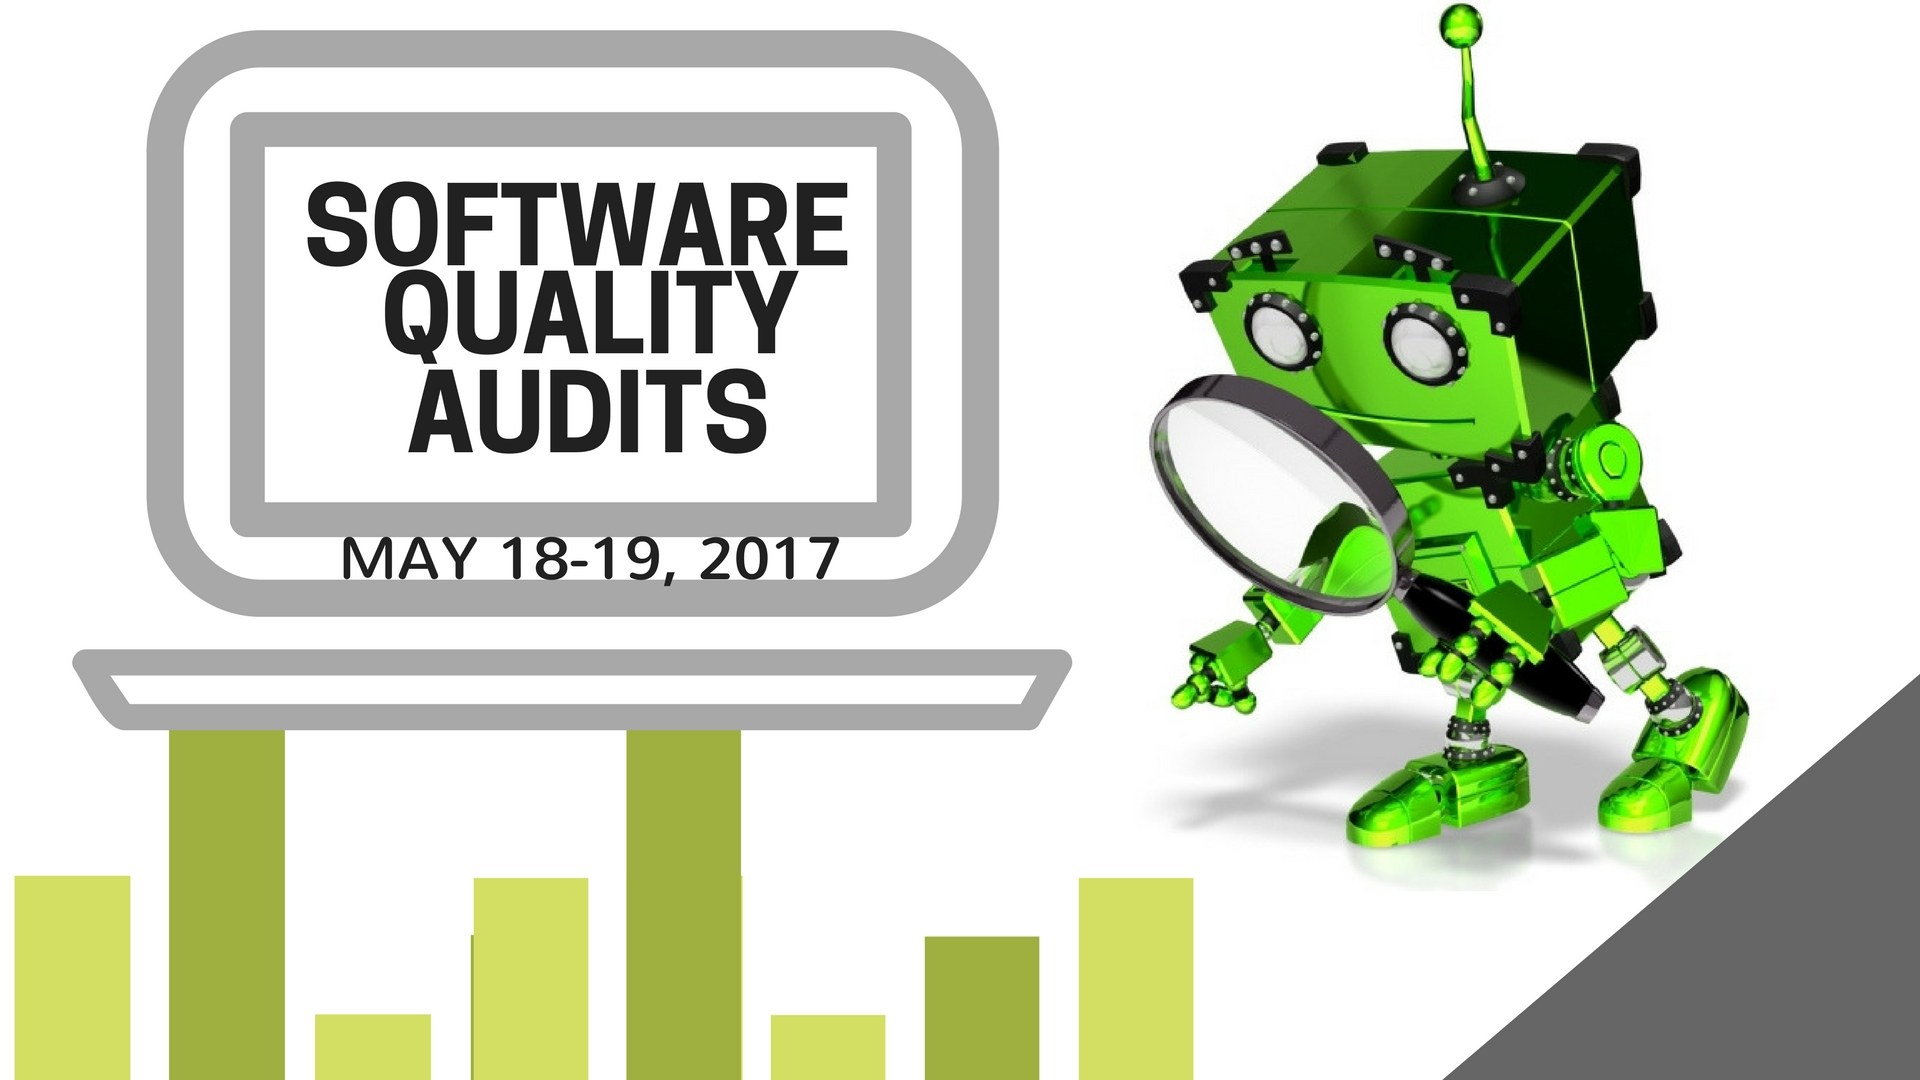 Software Quality Audits